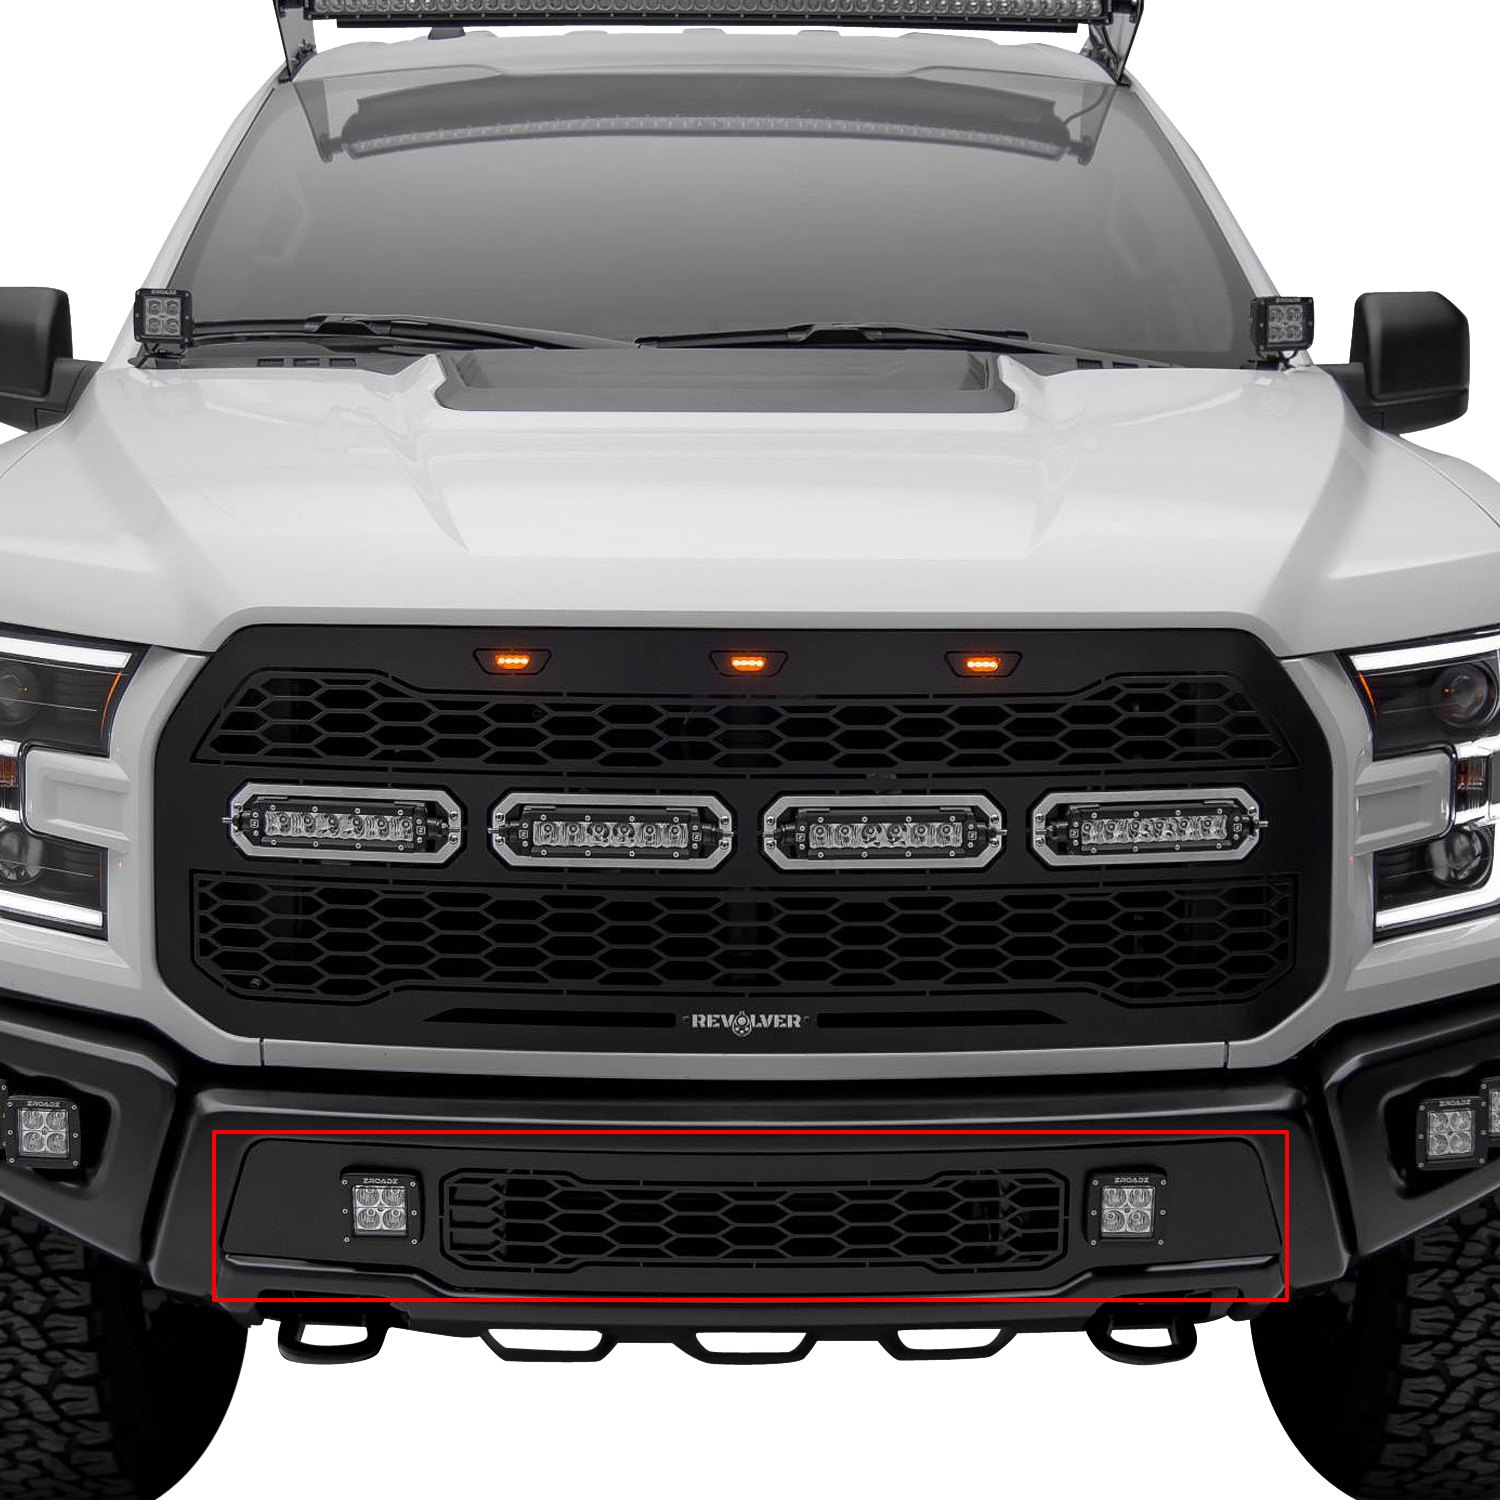 purchase T-Rex® 6525661 - 1-Pc Revolver Series Black CNC Machined Bumper Grille with 2 x 3